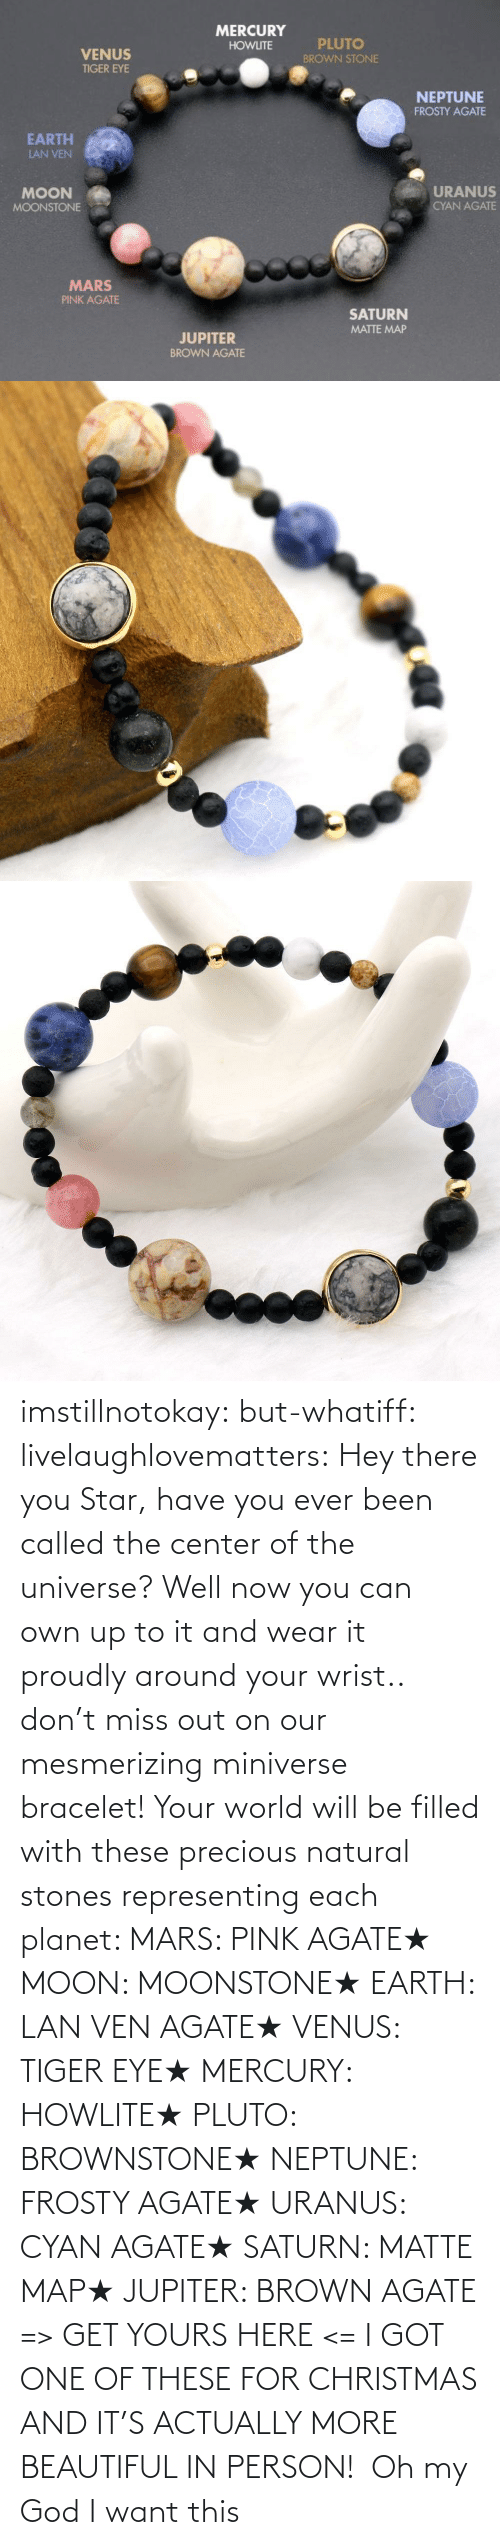 Jupiter: imstillnotokay:  but-whatiff: livelaughlovematters:  Hey there you Star, have you ever been called the center of the universe? Well now you can own up to it and wear it proudly around your wrist.. don't miss out on our mesmerizing miniverse bracelet! Your world will be filled with these precious natural stones representing each planet:  MARS: PINK AGATE★ MOON: MOONSTONE★ EARTH: LAN VEN AGATE★ VENUS: TIGER EYE★ MERCURY: HOWLITE★ PLUTO: BROWNSTONE★ NEPTUNE: FROSTY AGATE★ URANUS: CYAN AGATE★ SATURN: MATTE MAP★ JUPITER: BROWN AGATE => GET YOURS HERE <=  I GOT ONE OF THESE FOR CHRISTMAS AND IT'S ACTUALLY MORE BEAUTIFUL IN PERSON!     Oh my God I want this